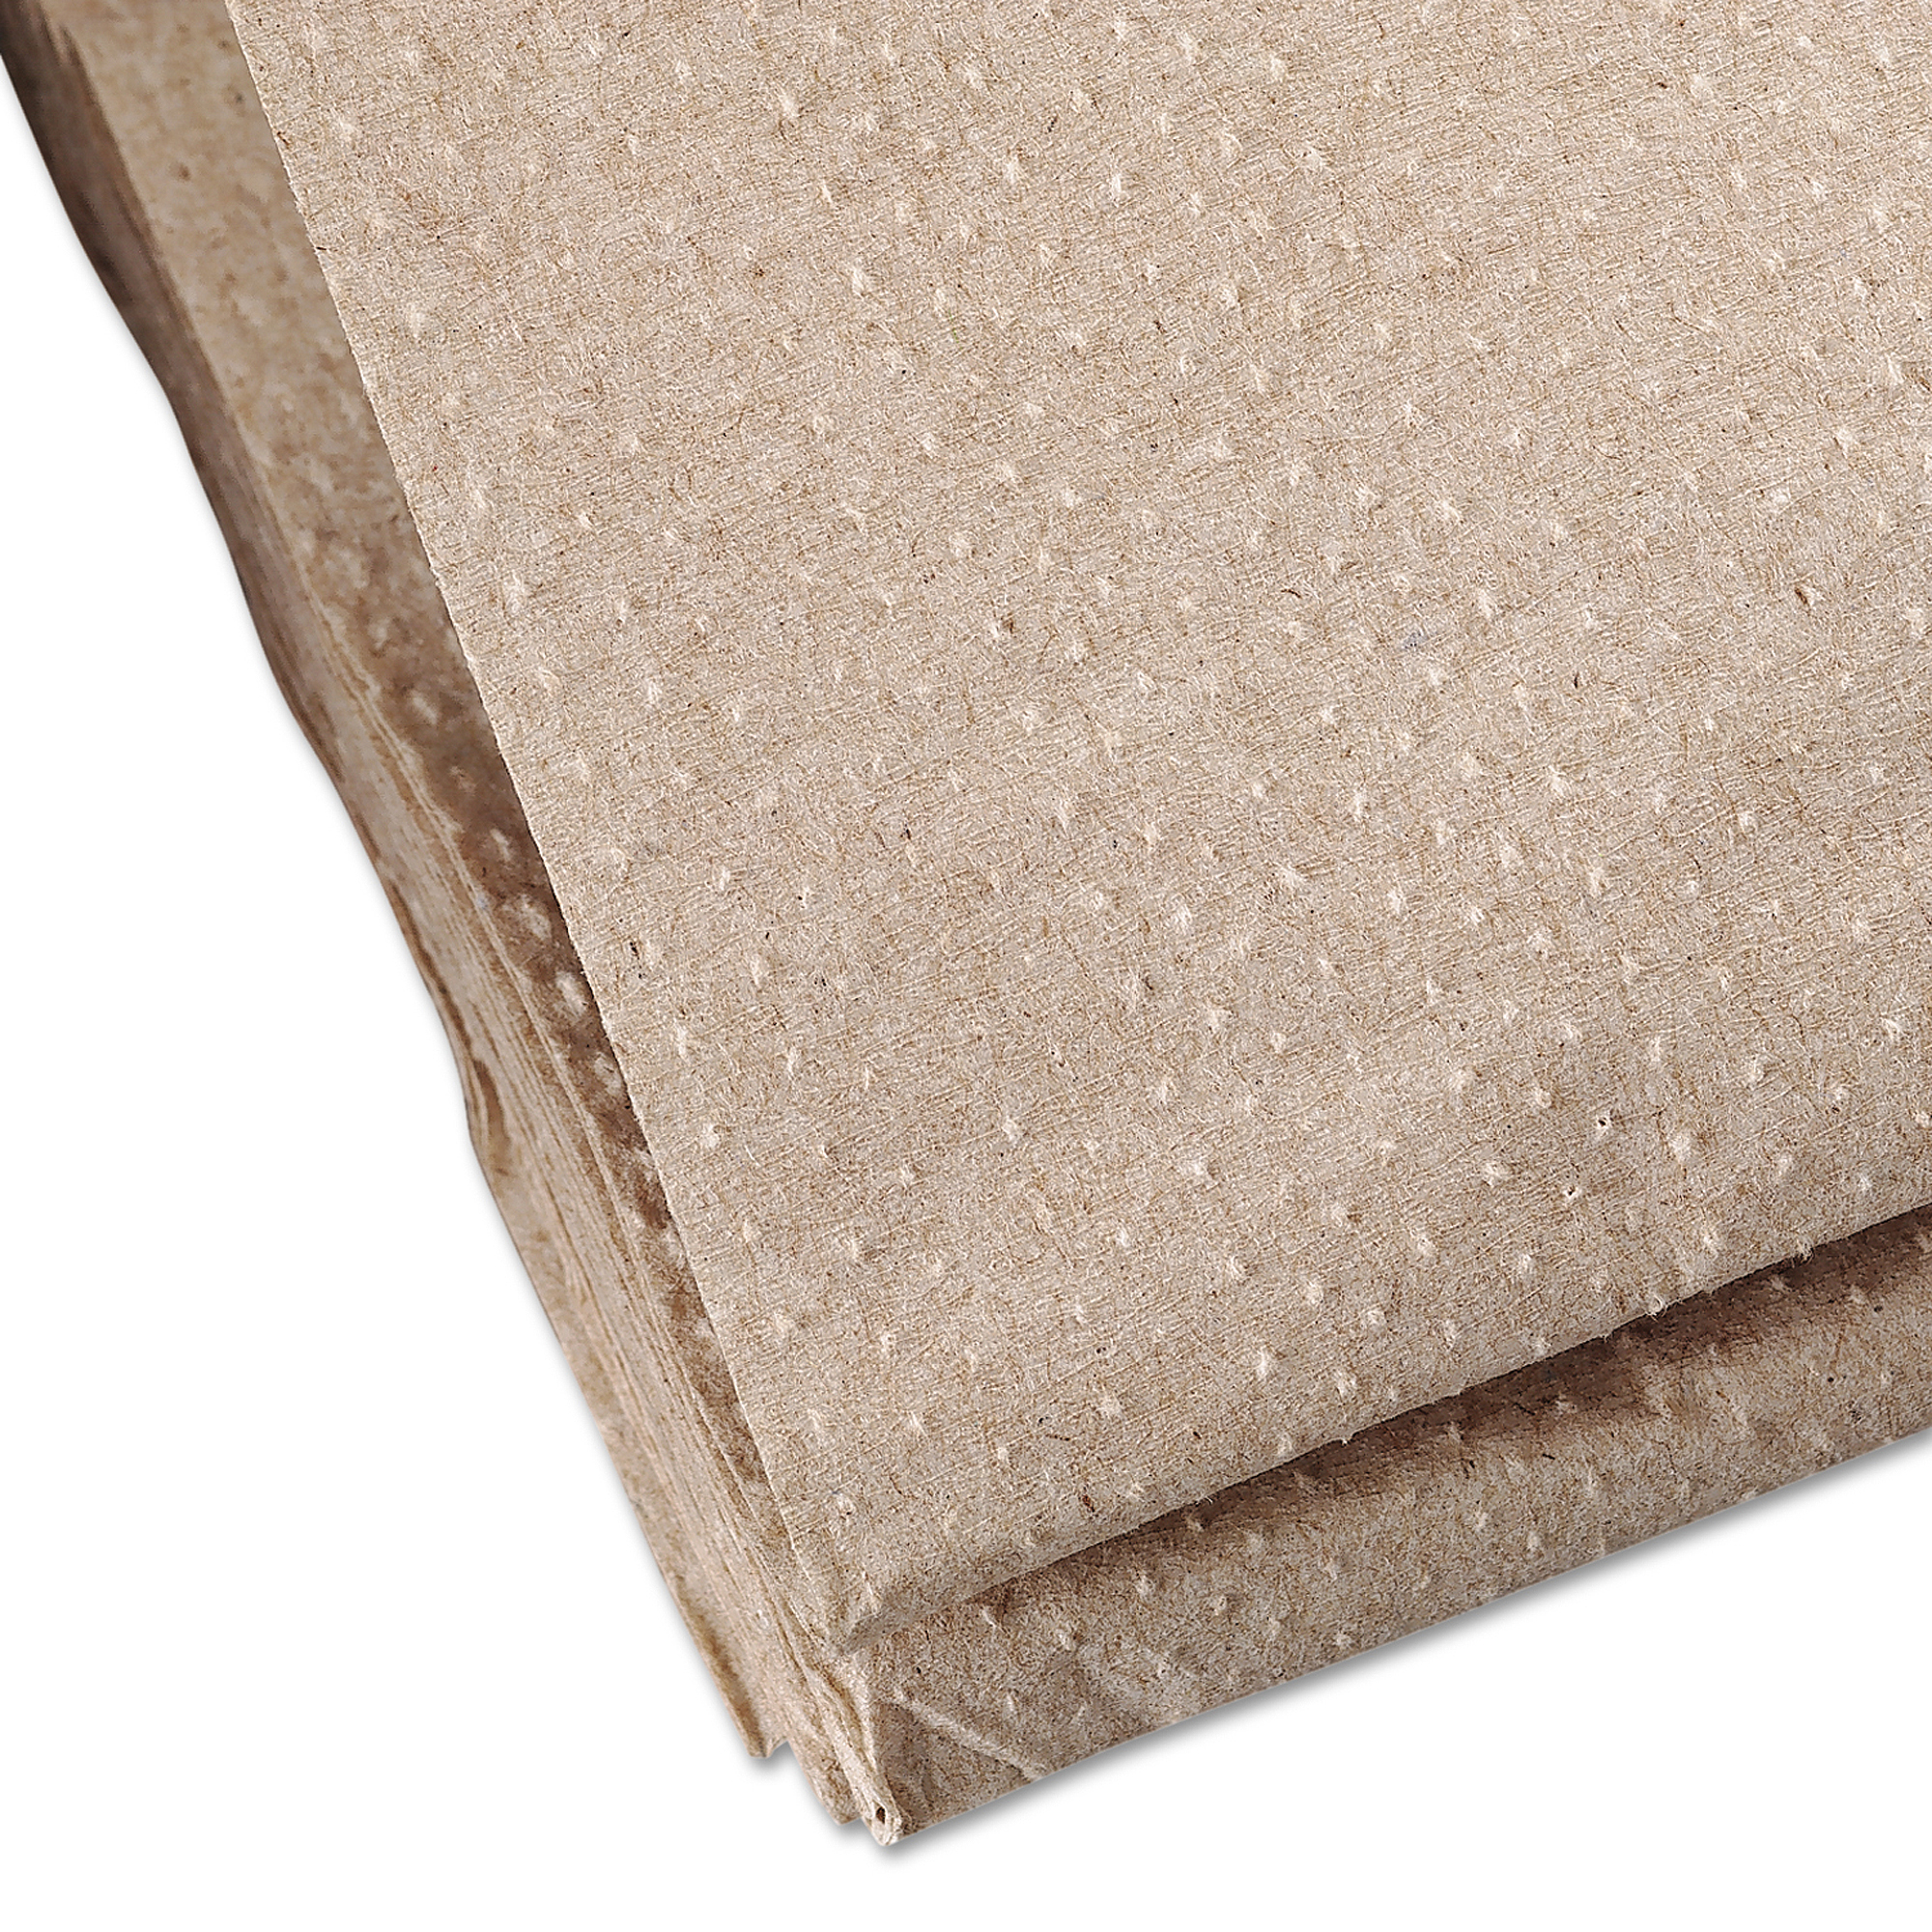 Kimberly-Clark Professional Wypall L20 Wipers, 176 sheets